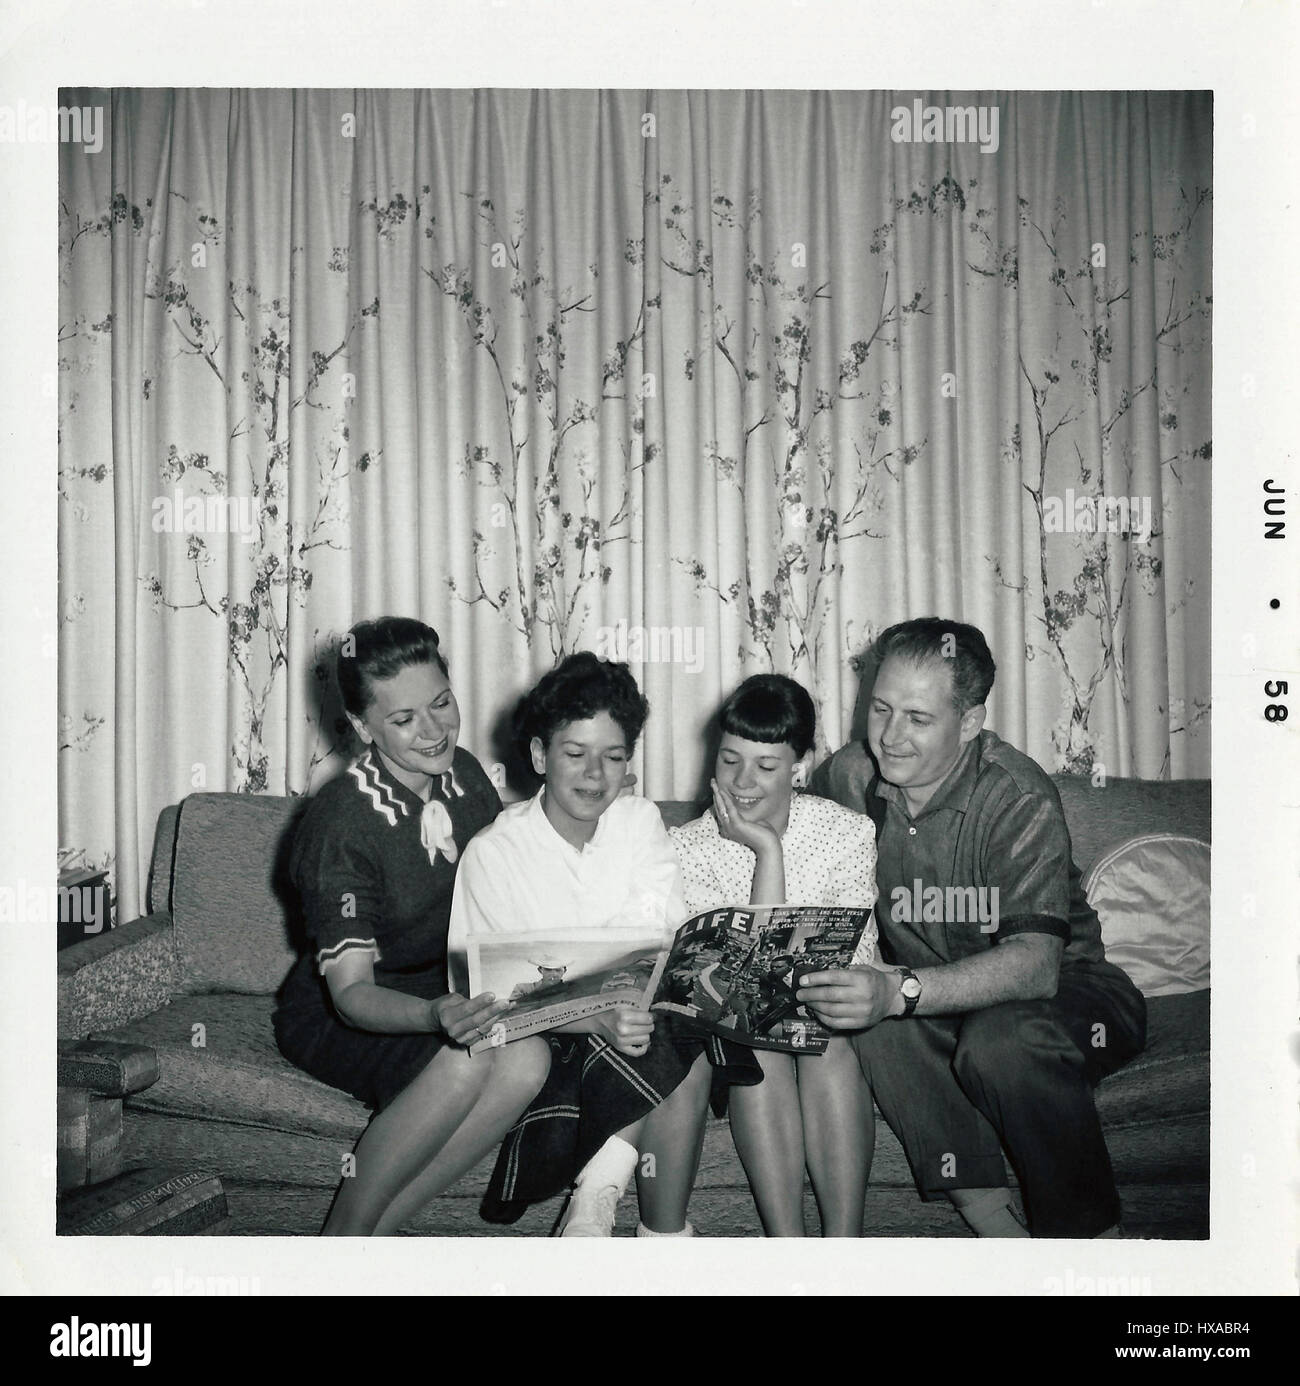 American family reading Life Magazine in 1958. - Stock Image